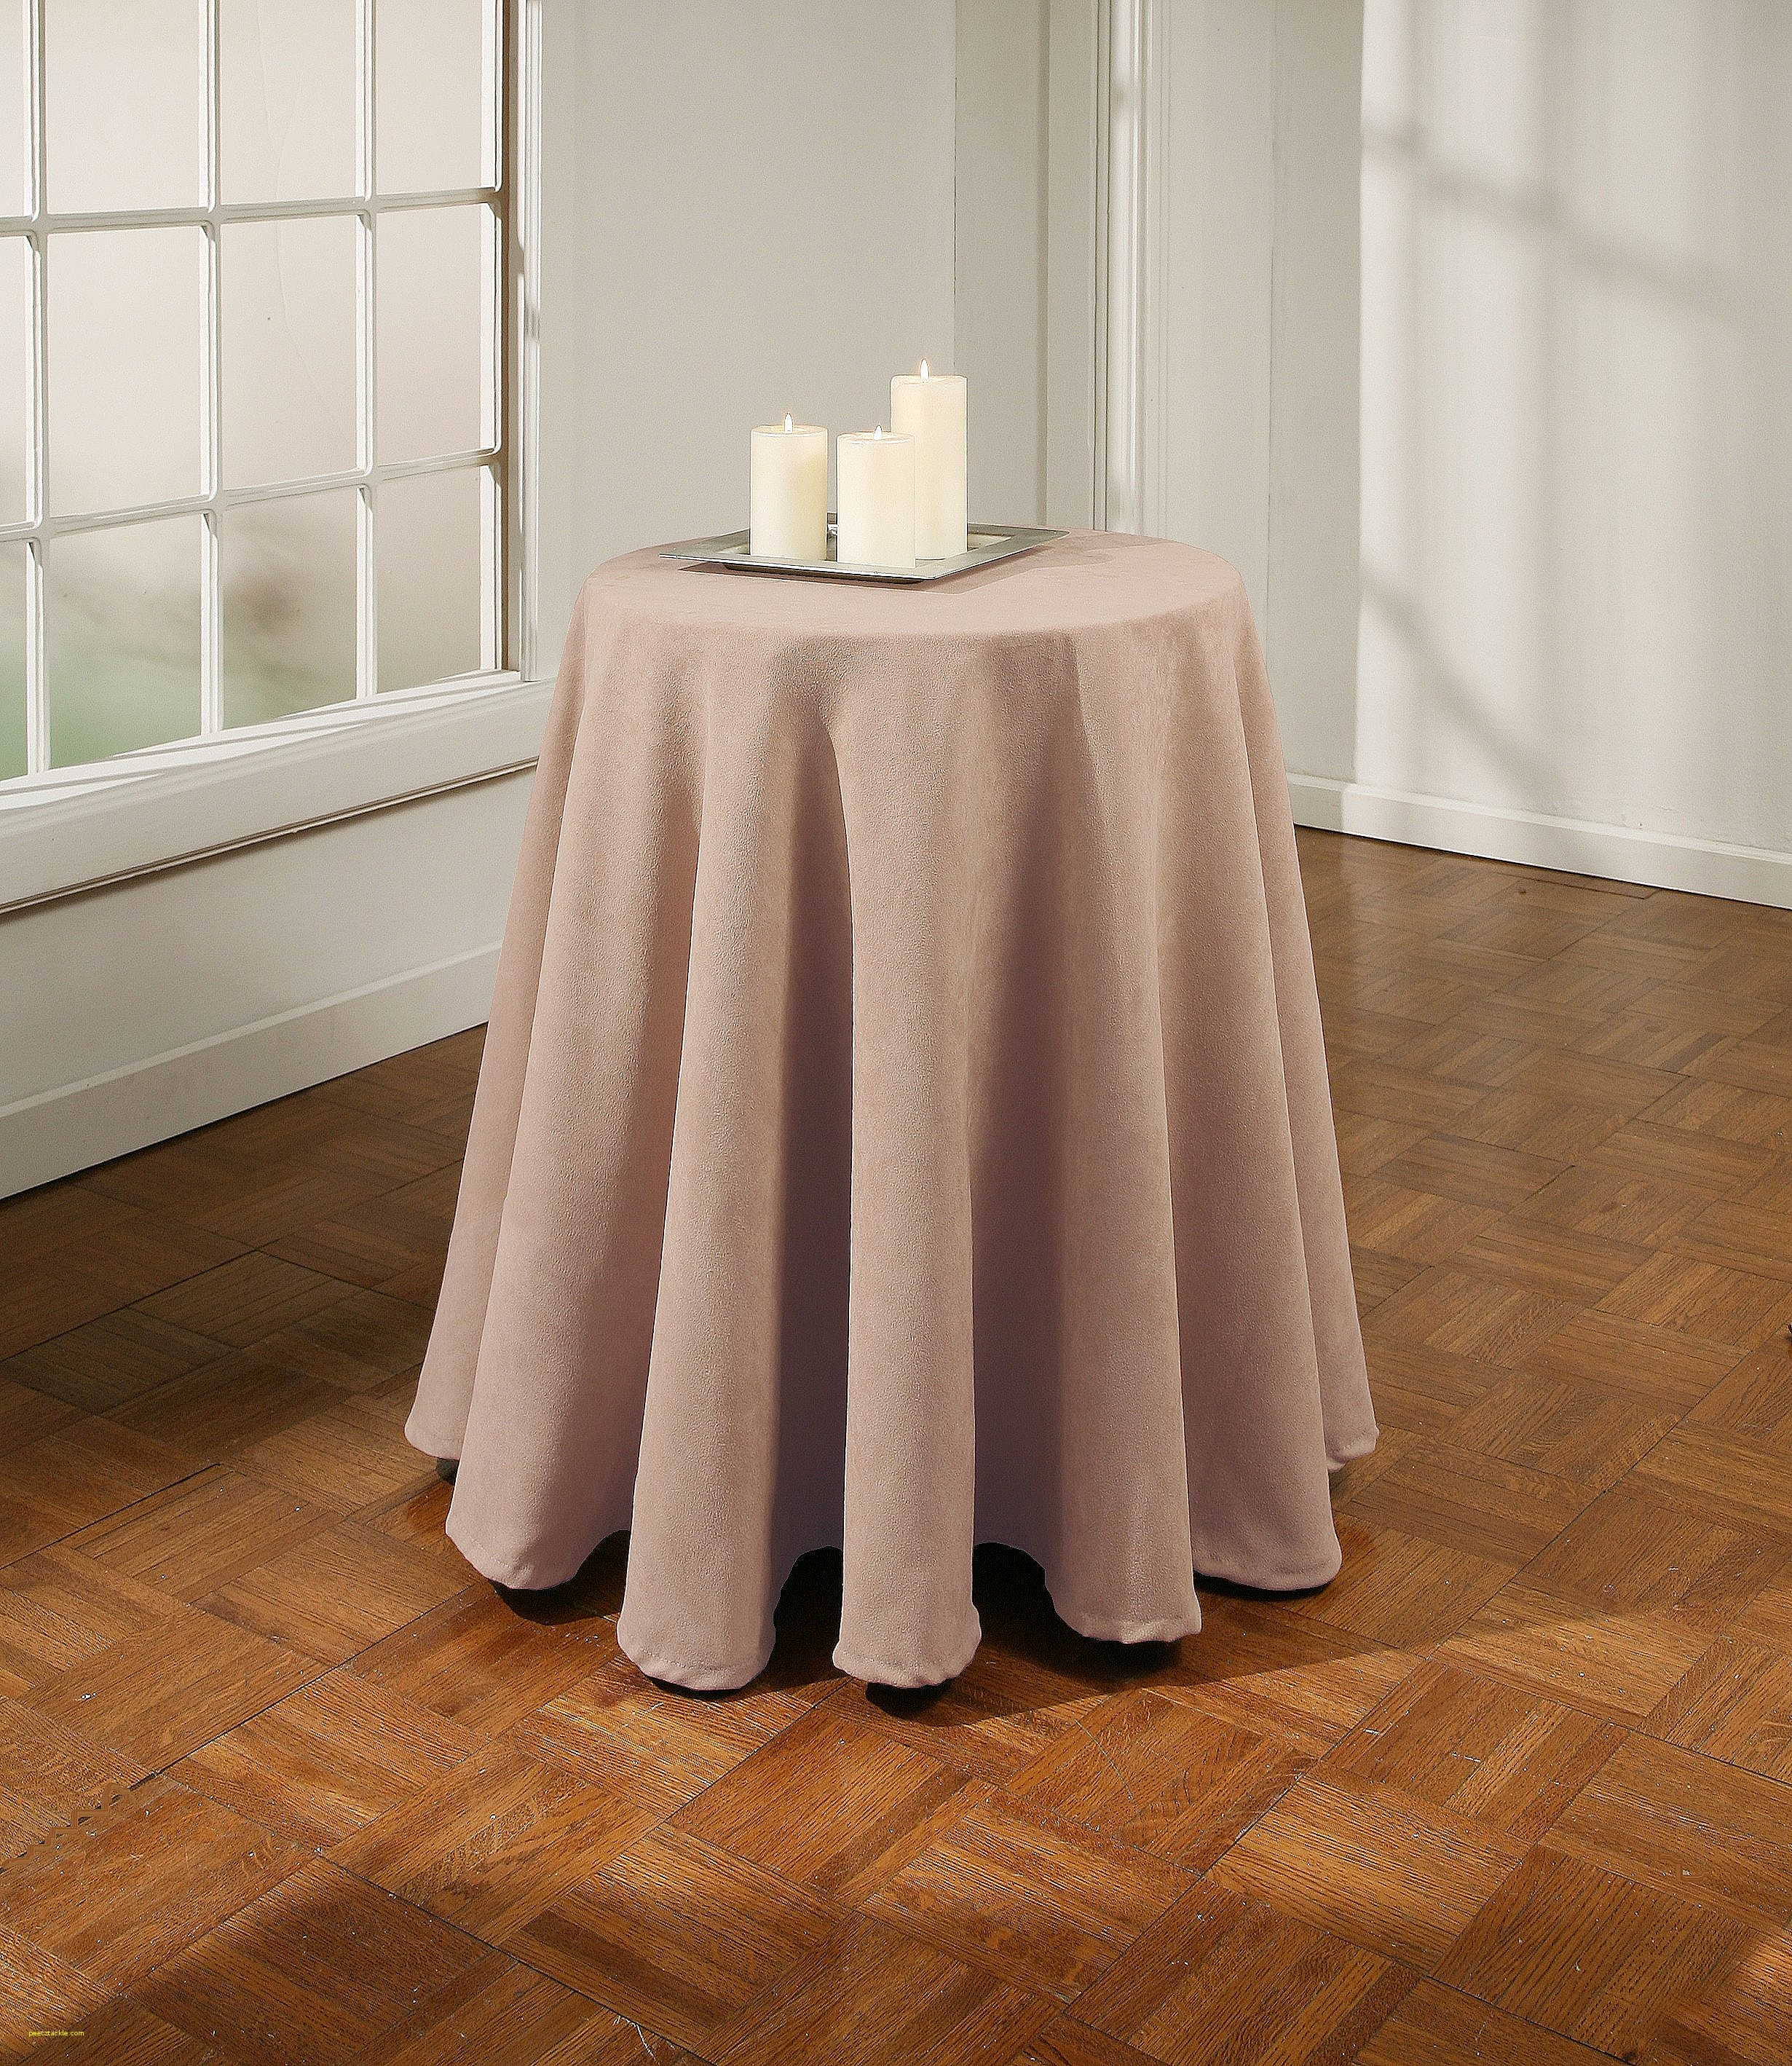 awesome inch round tablecloth need spoil accent table design decorative topper glass top mirror cake pan hat box outdoor seat cushion cloths ikea end target red living room decor